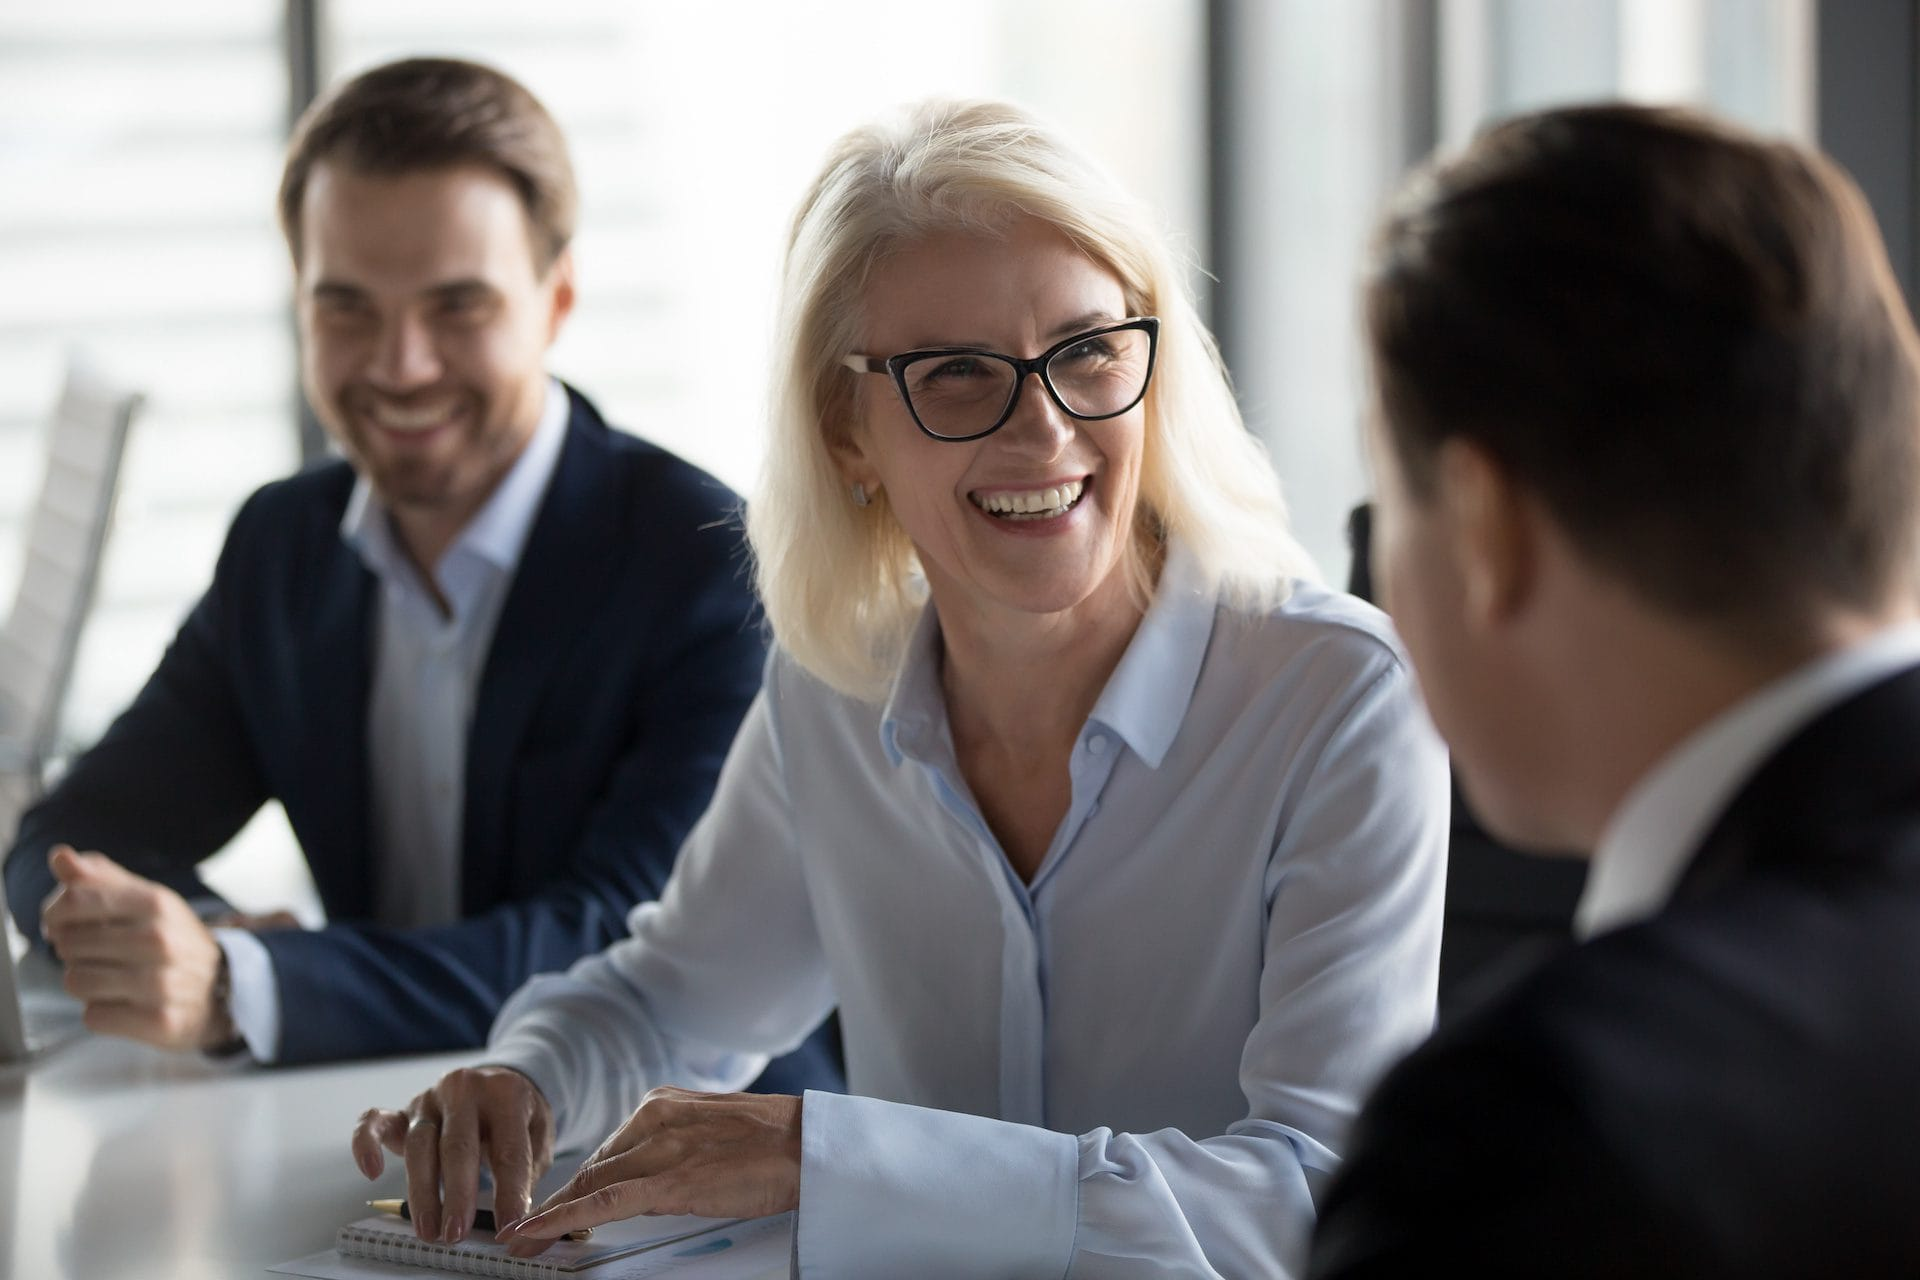 Friendly middle aged female leader laughing at group business meeting